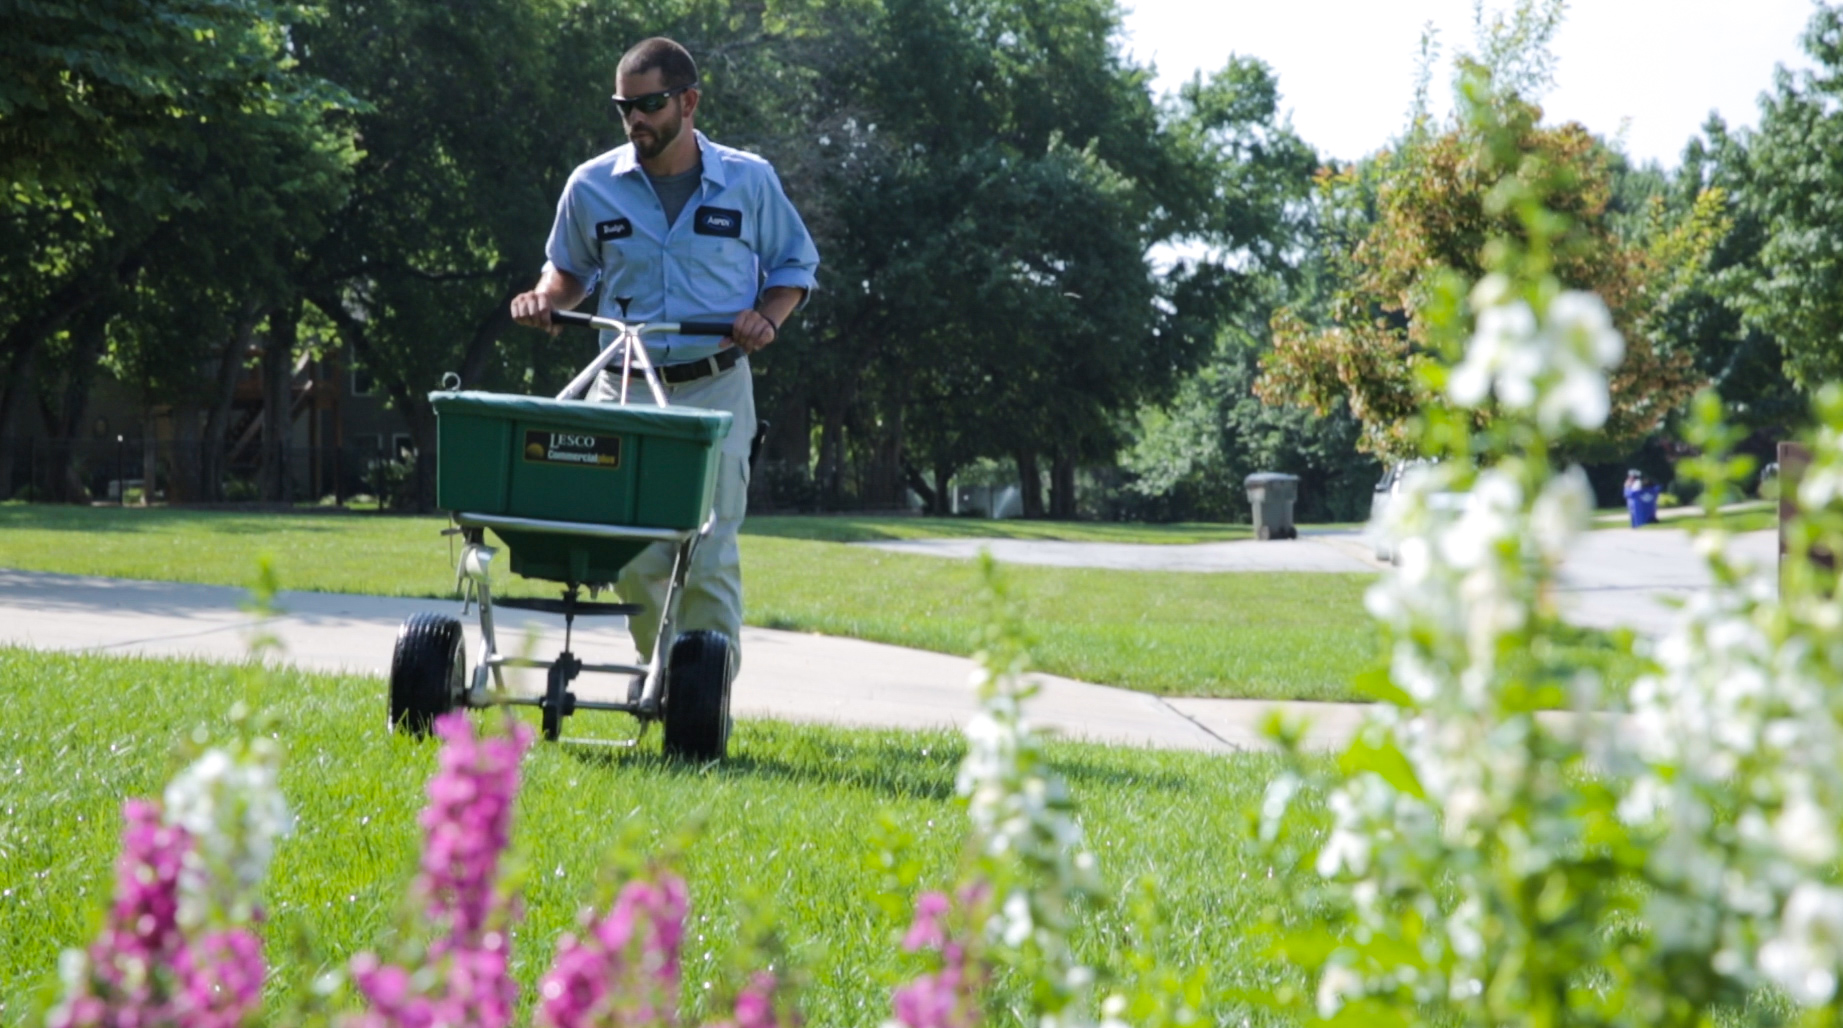 The Lawn Fertilizer Services Overland Park Ks Aspen Lawn Lesco Grass Seed Prices Lesco Grass Seed Varieties Lawn Fertilizer Treatments Overland Kansas Leawood Benefits houzz-03 Lesco Grass Seed